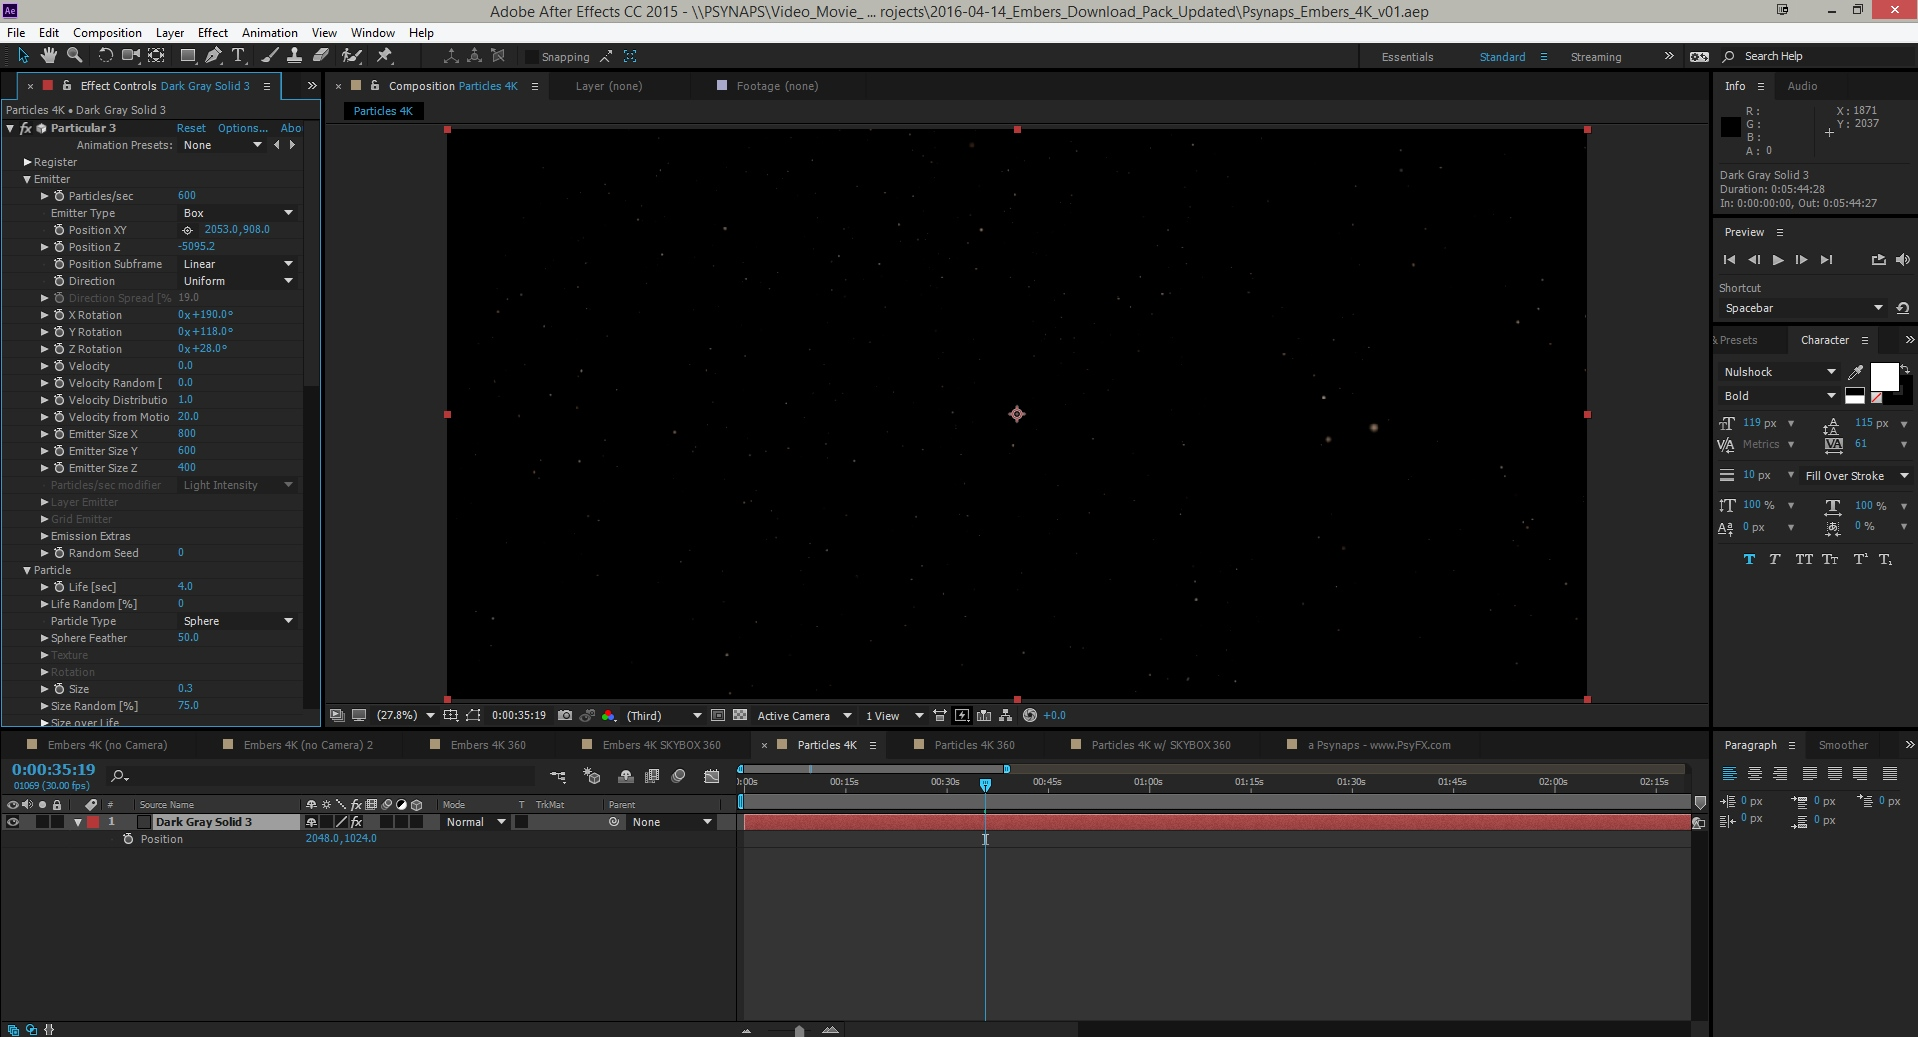 Adobe After Effects Cc Particle World Download - criseaussie